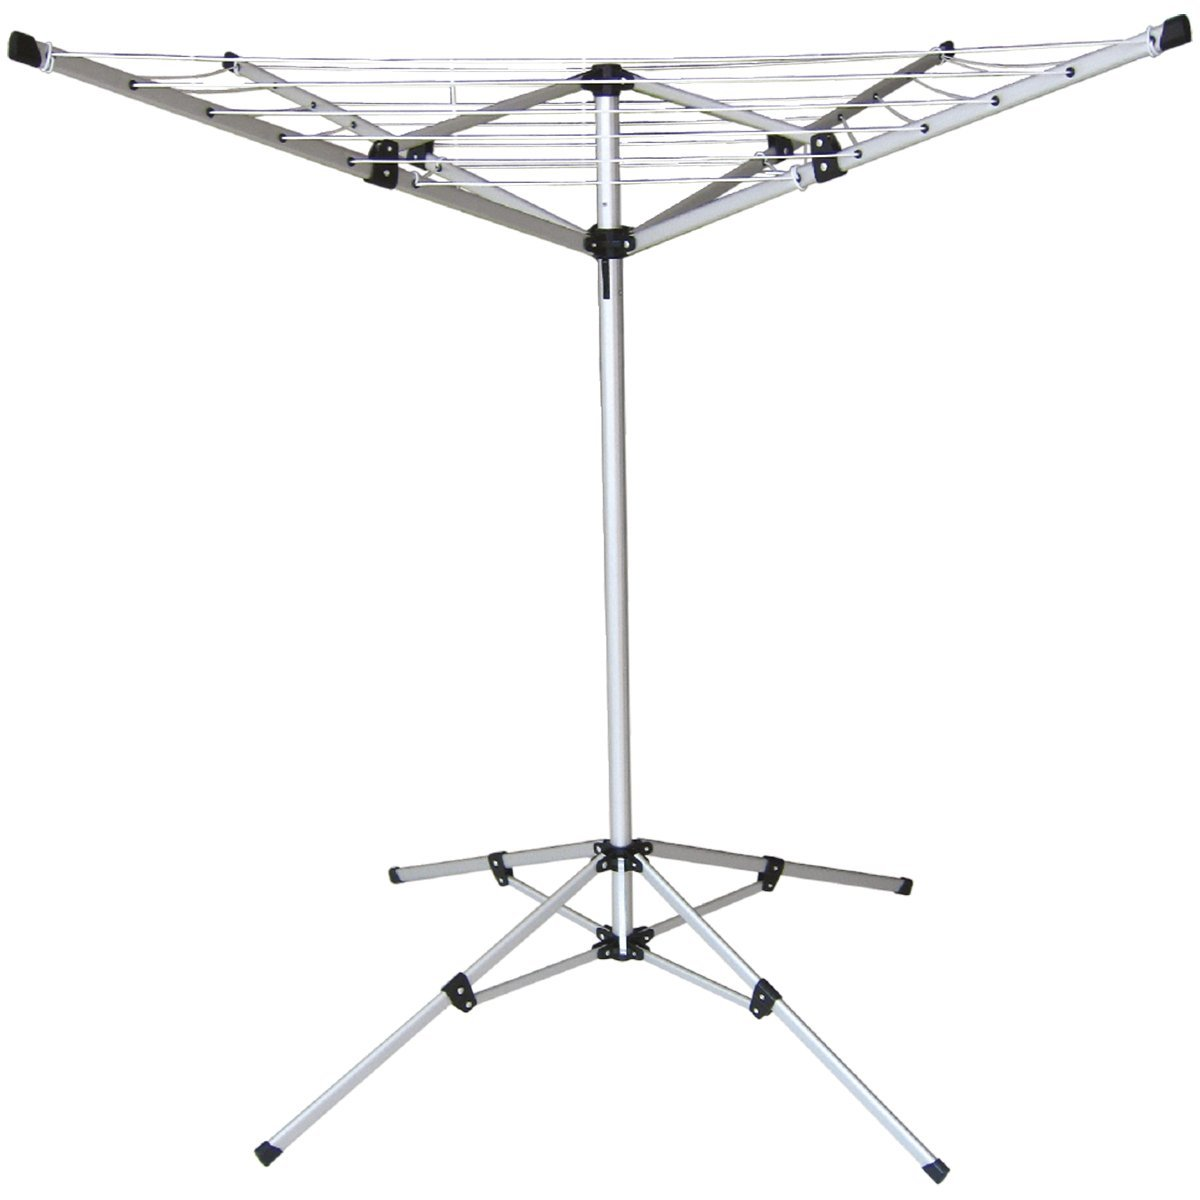 Marko Homewares 18M Clothes Airer Portable Rotary Washing Line 4 Arm Free  Standing Multi Laundry: Amazon.co.uk: Kitchen U0026 Home